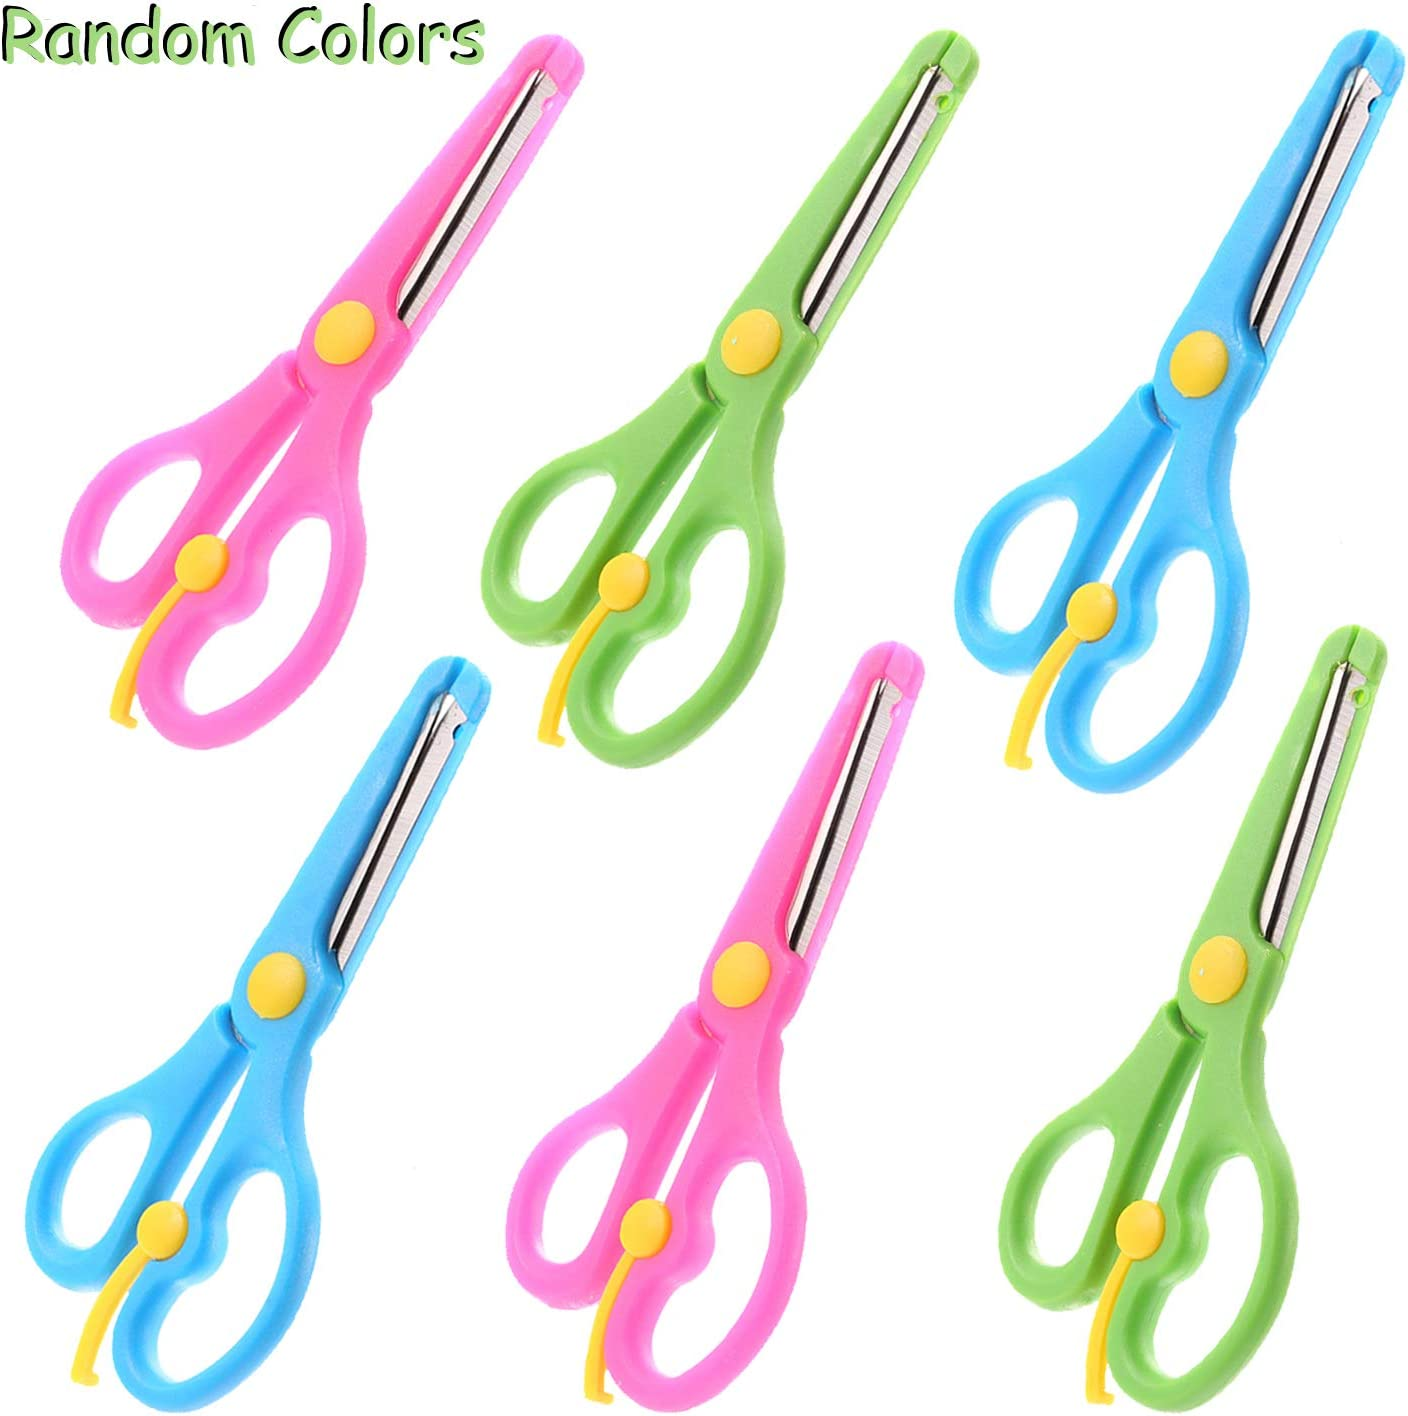 Pack of New 2-4 Animal Pattern Kids Safety Scissors for Home,School Arts /& Craft